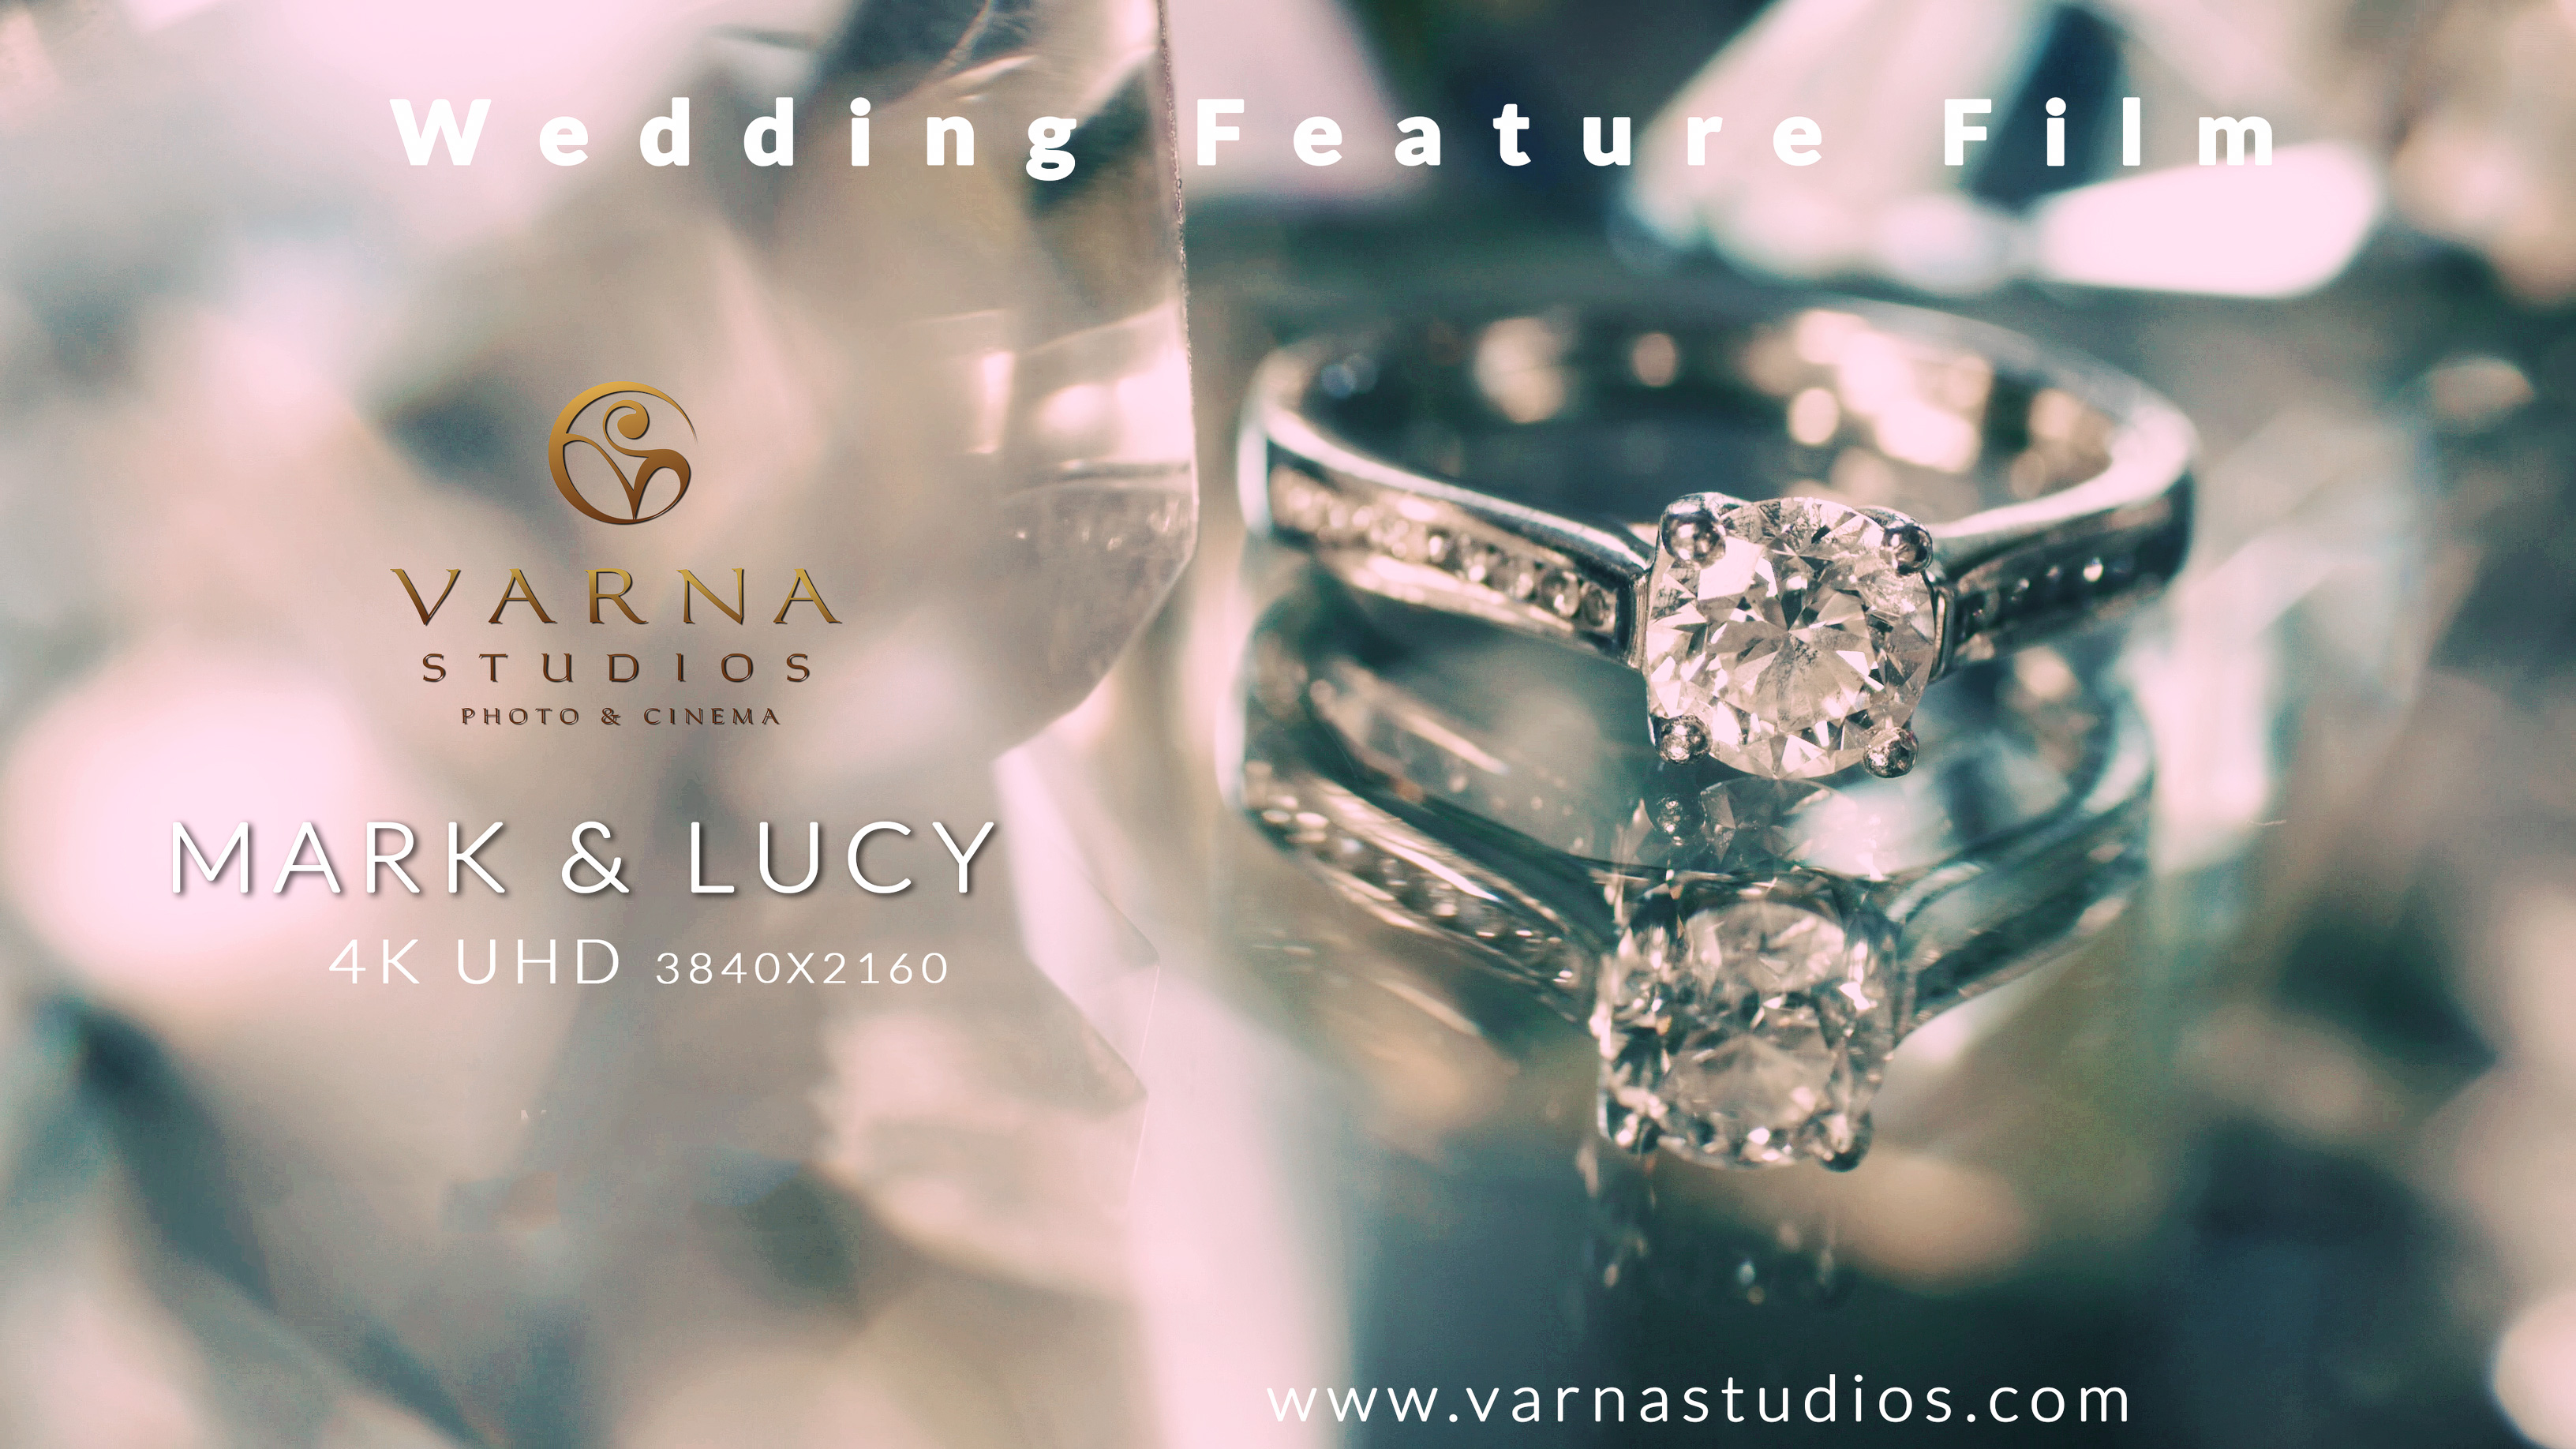 MArk-and-Lucy-wedding-Feature-Film-4K-UHD